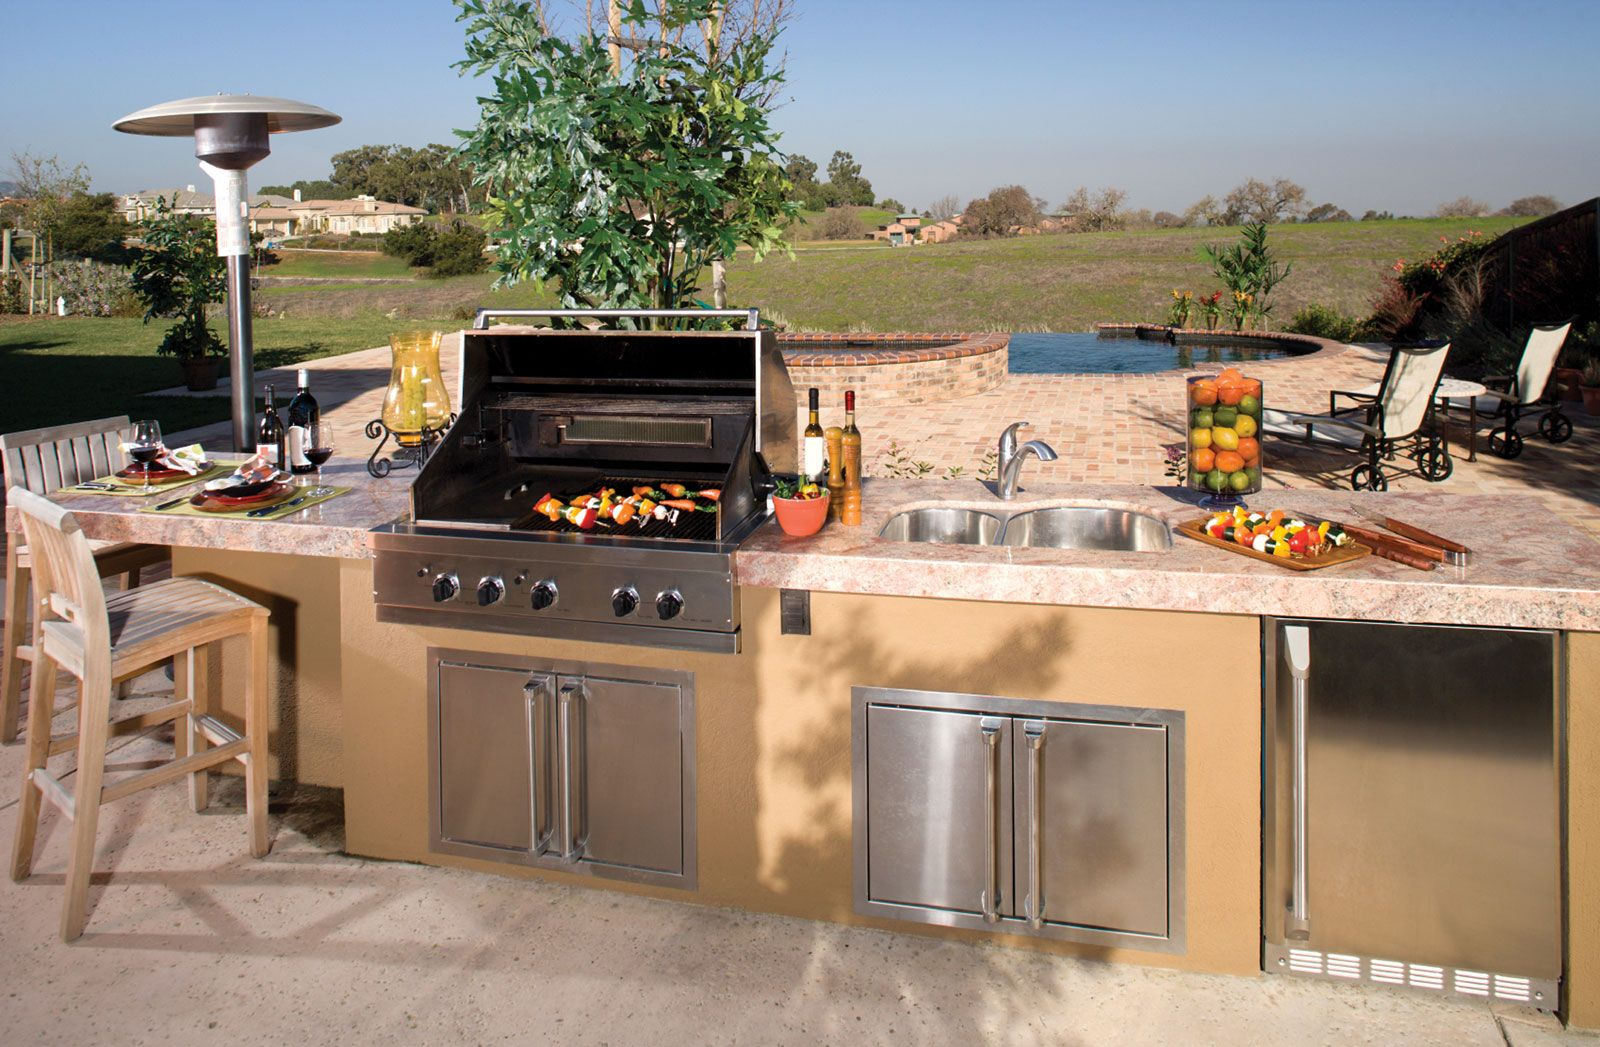 Outdoor Kitchen Design For Make An Amazing Backyard  Httpwww Glamorous Outside Kitchens Designs Decorating Inspiration